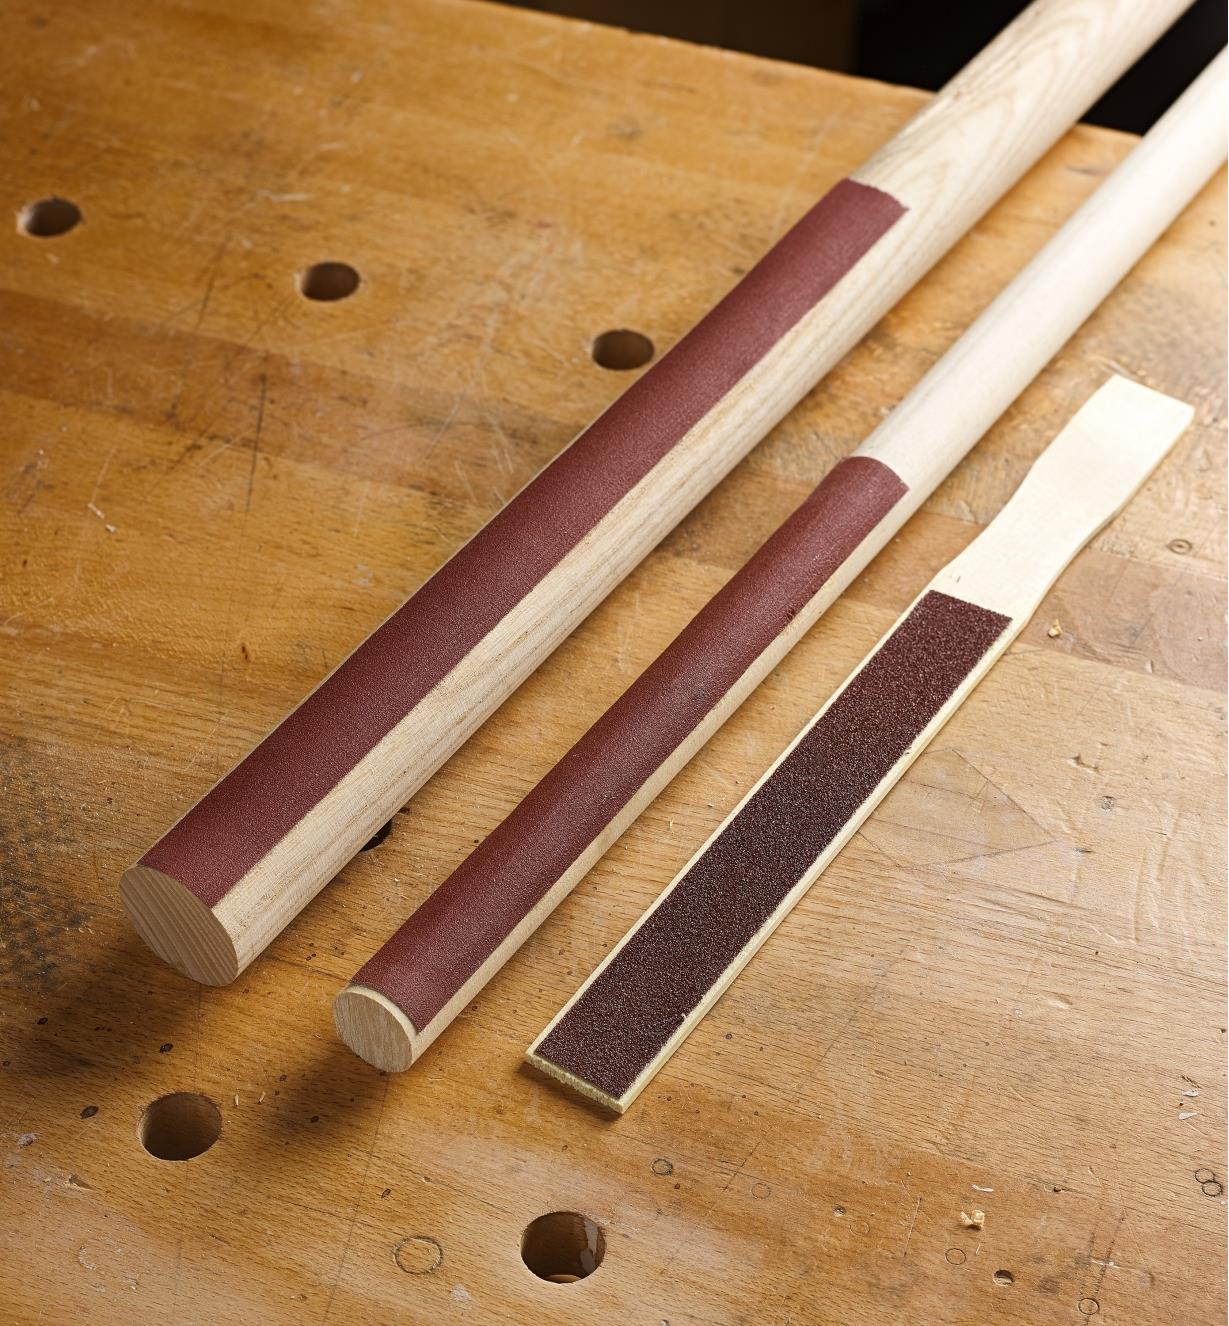 Cloth-backed sanding strips applied to sanding sticks for use on concave and flat surfaces